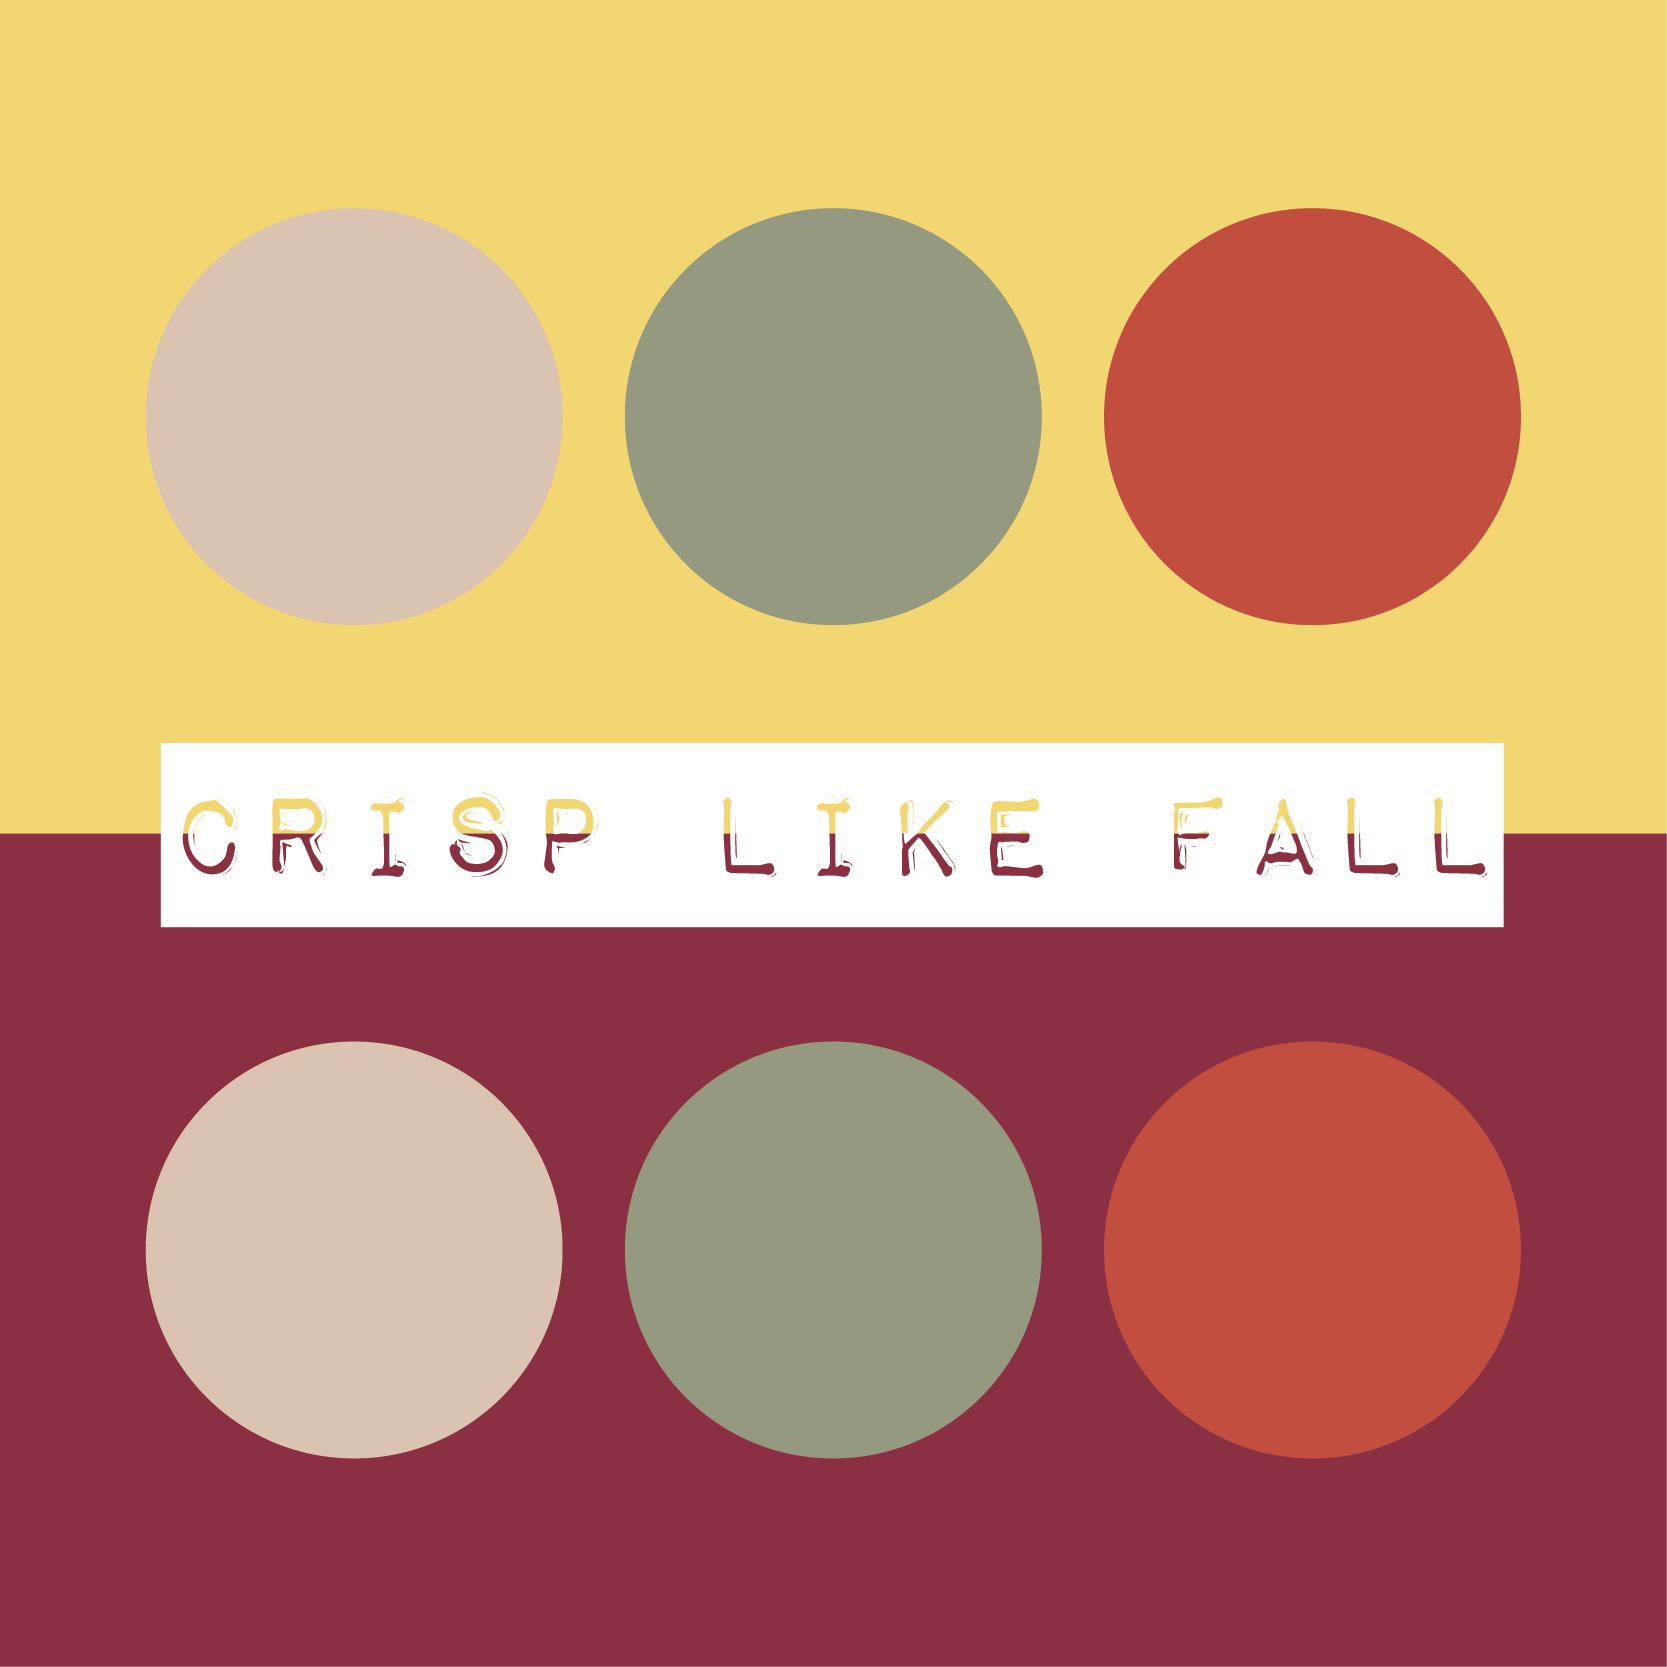 Are you ready for fall? Crisp air, crunchy leaves, and sweet apple cider!